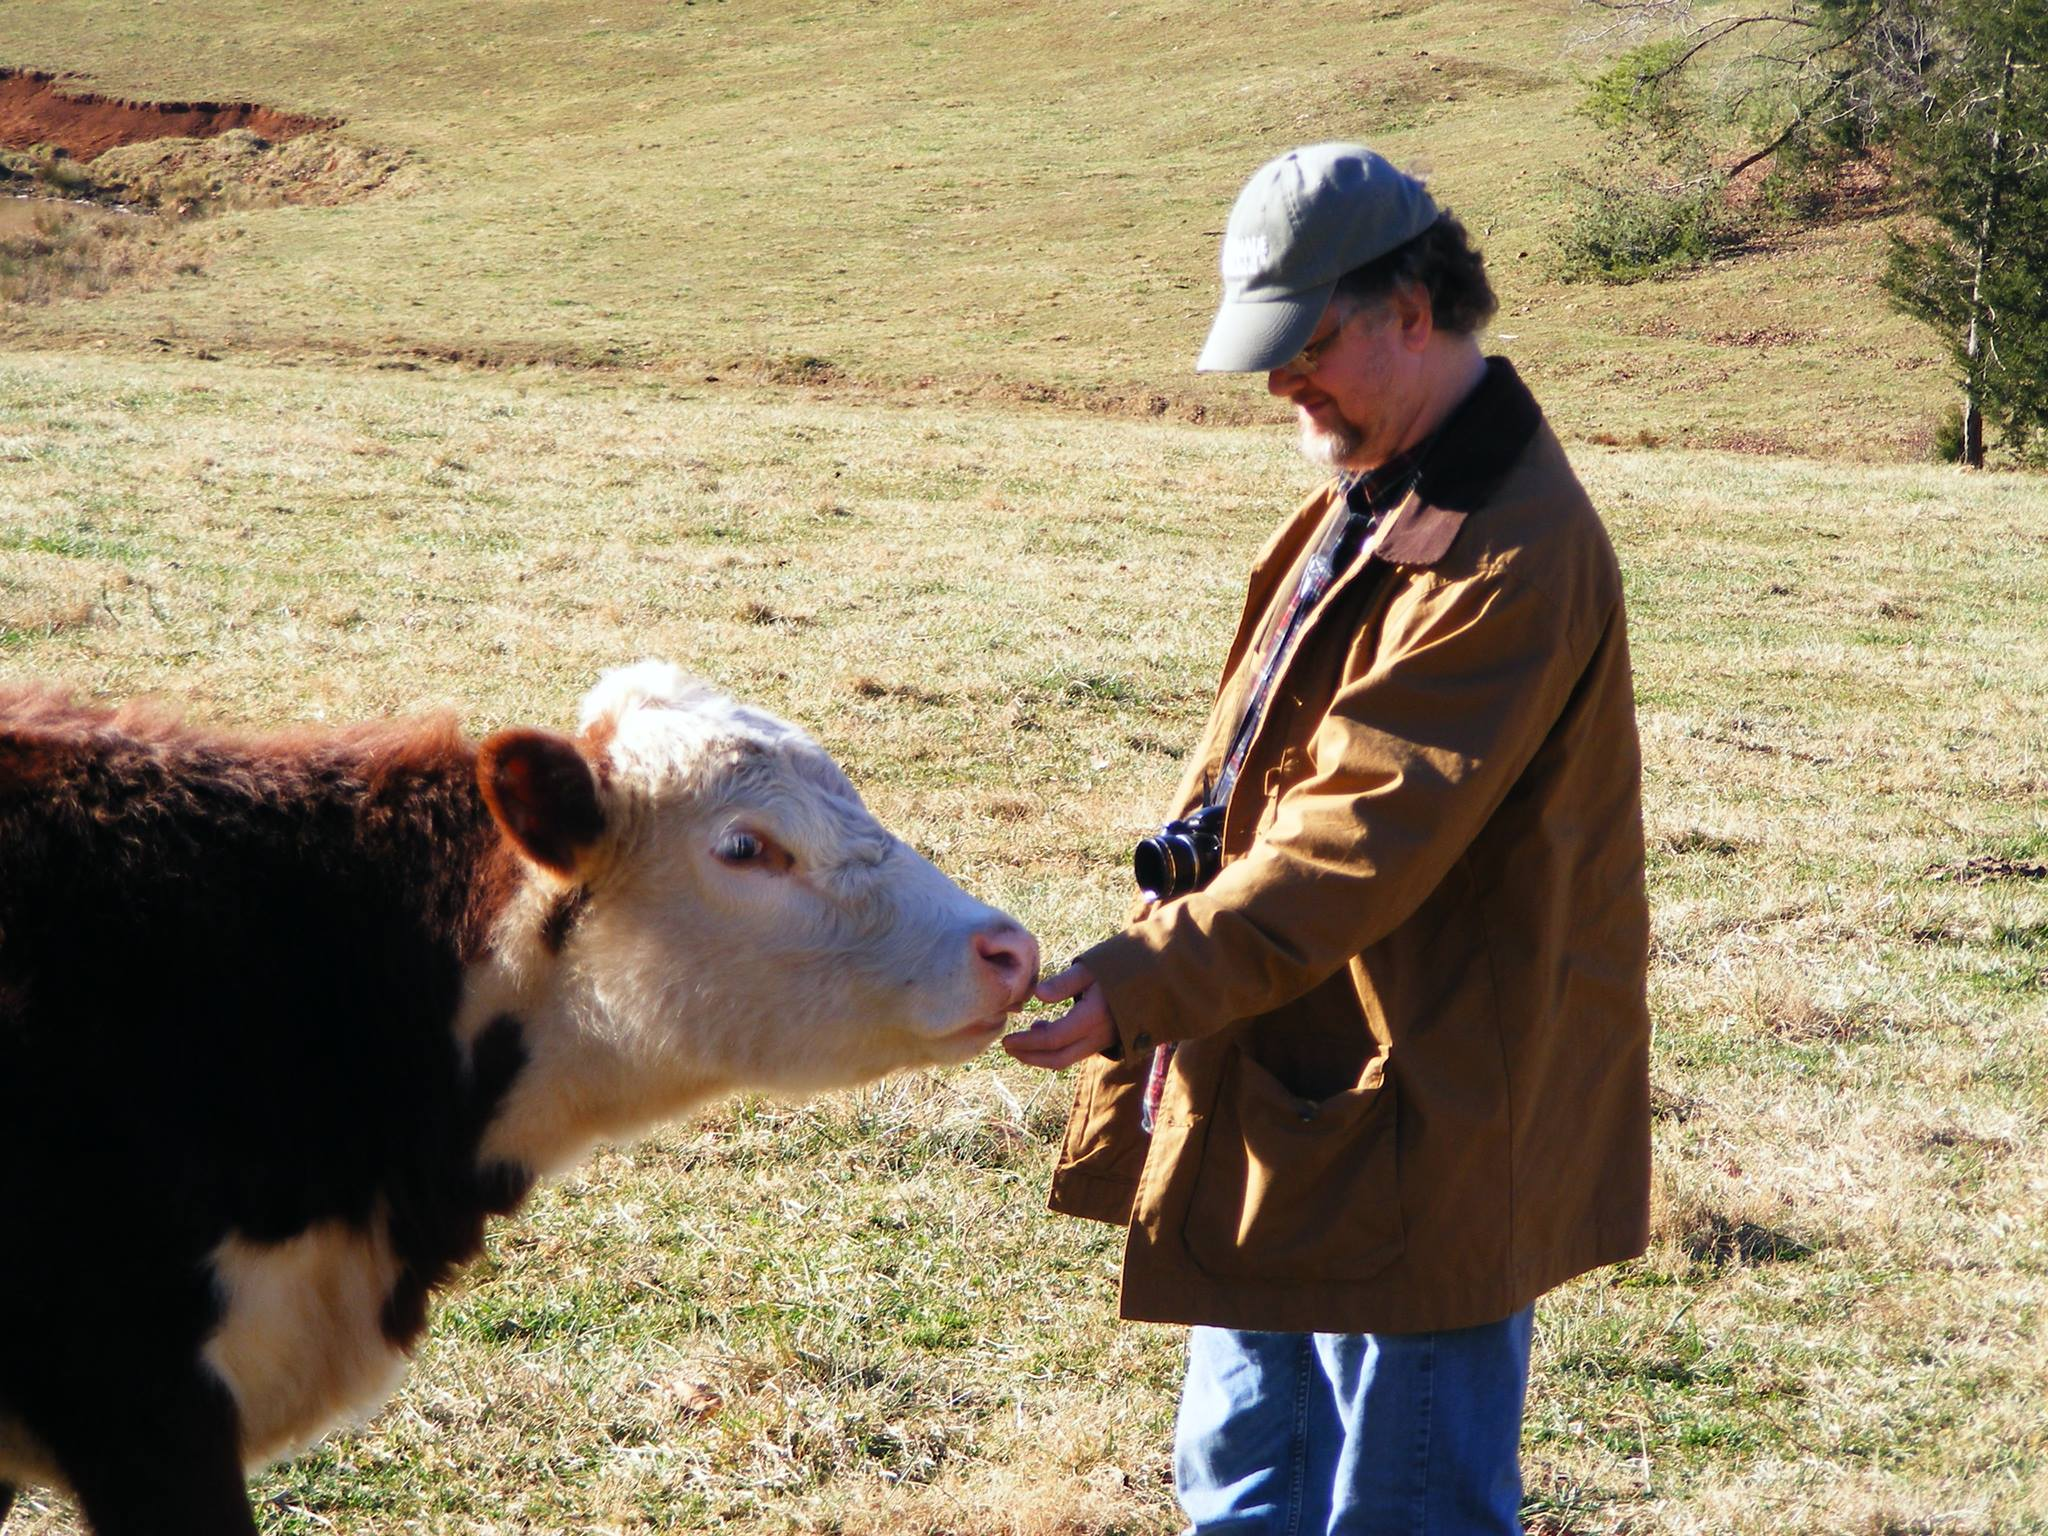 Greg Osterhause and cow bio pic